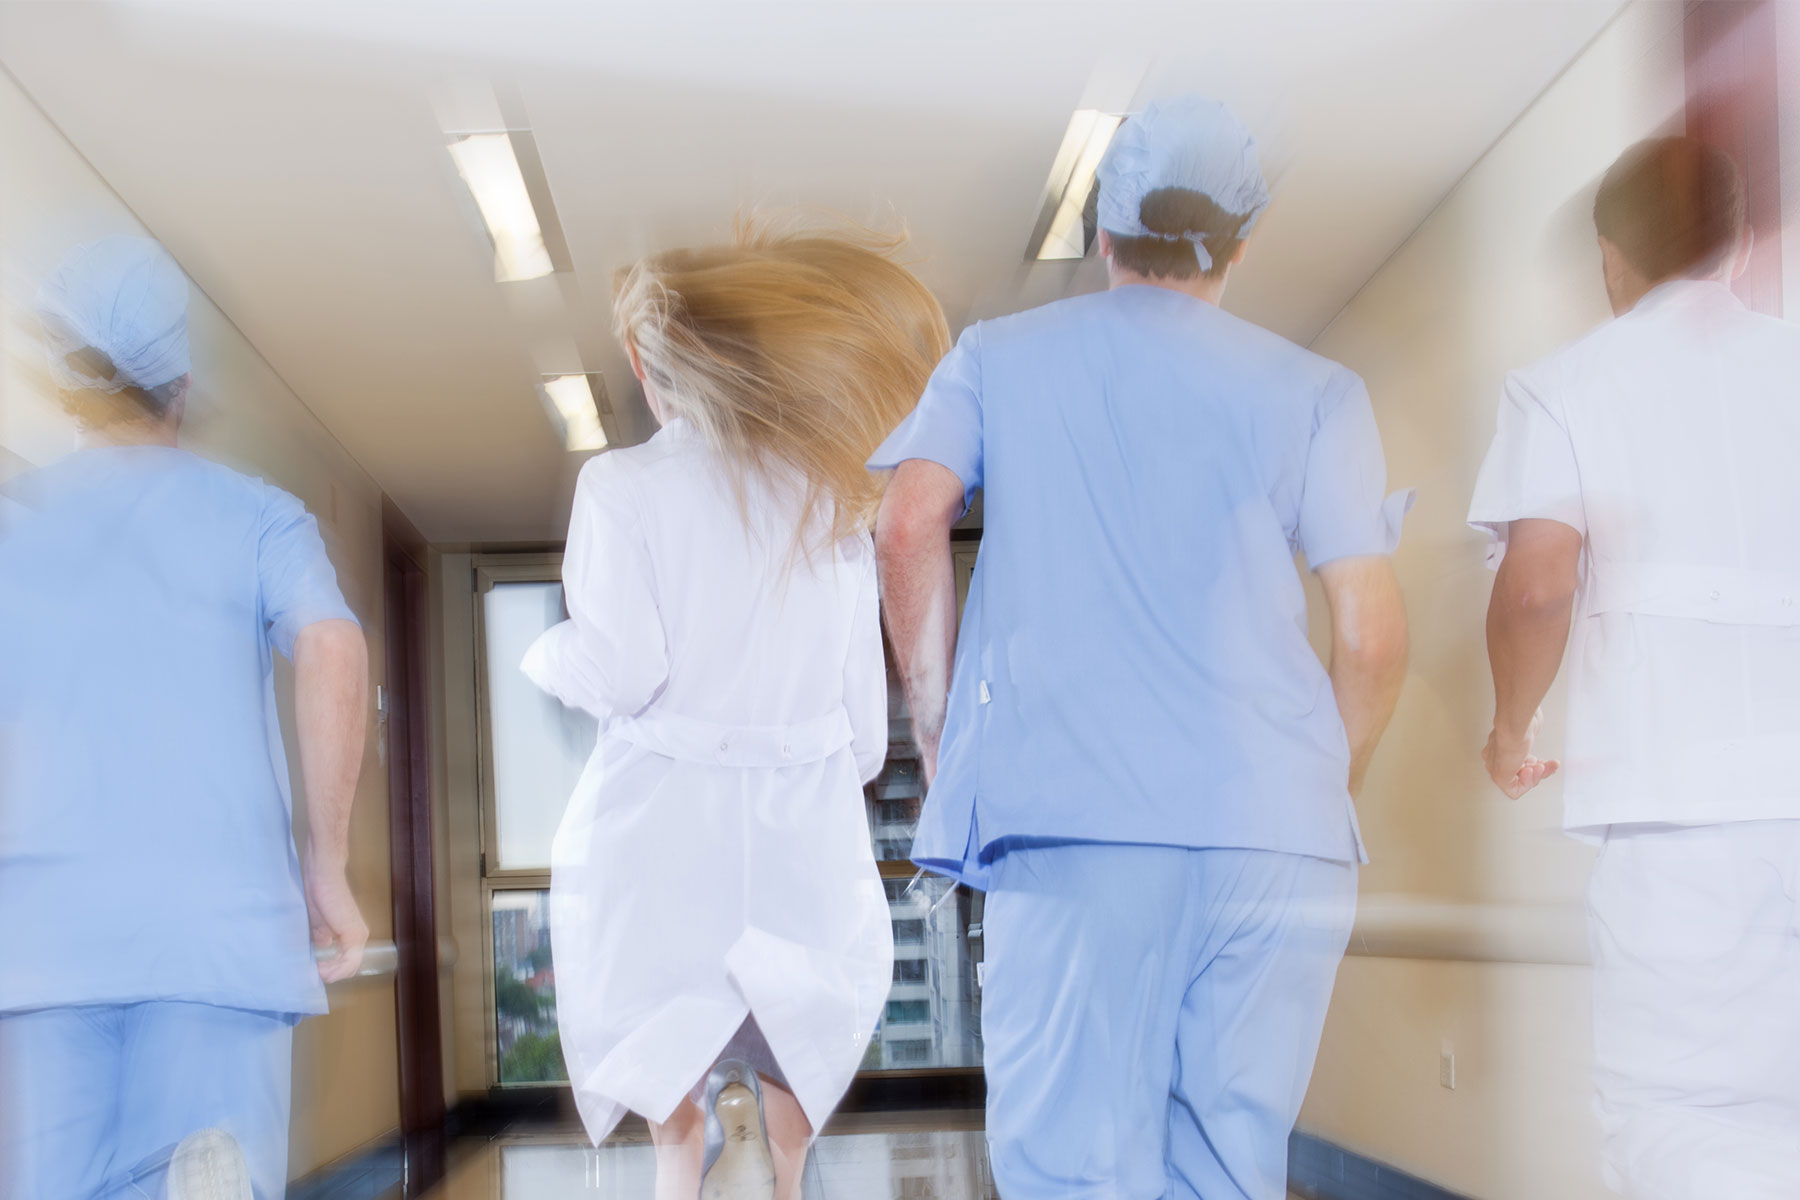 Crisis Assessment and Treatment Teams - doctors running down a corridor